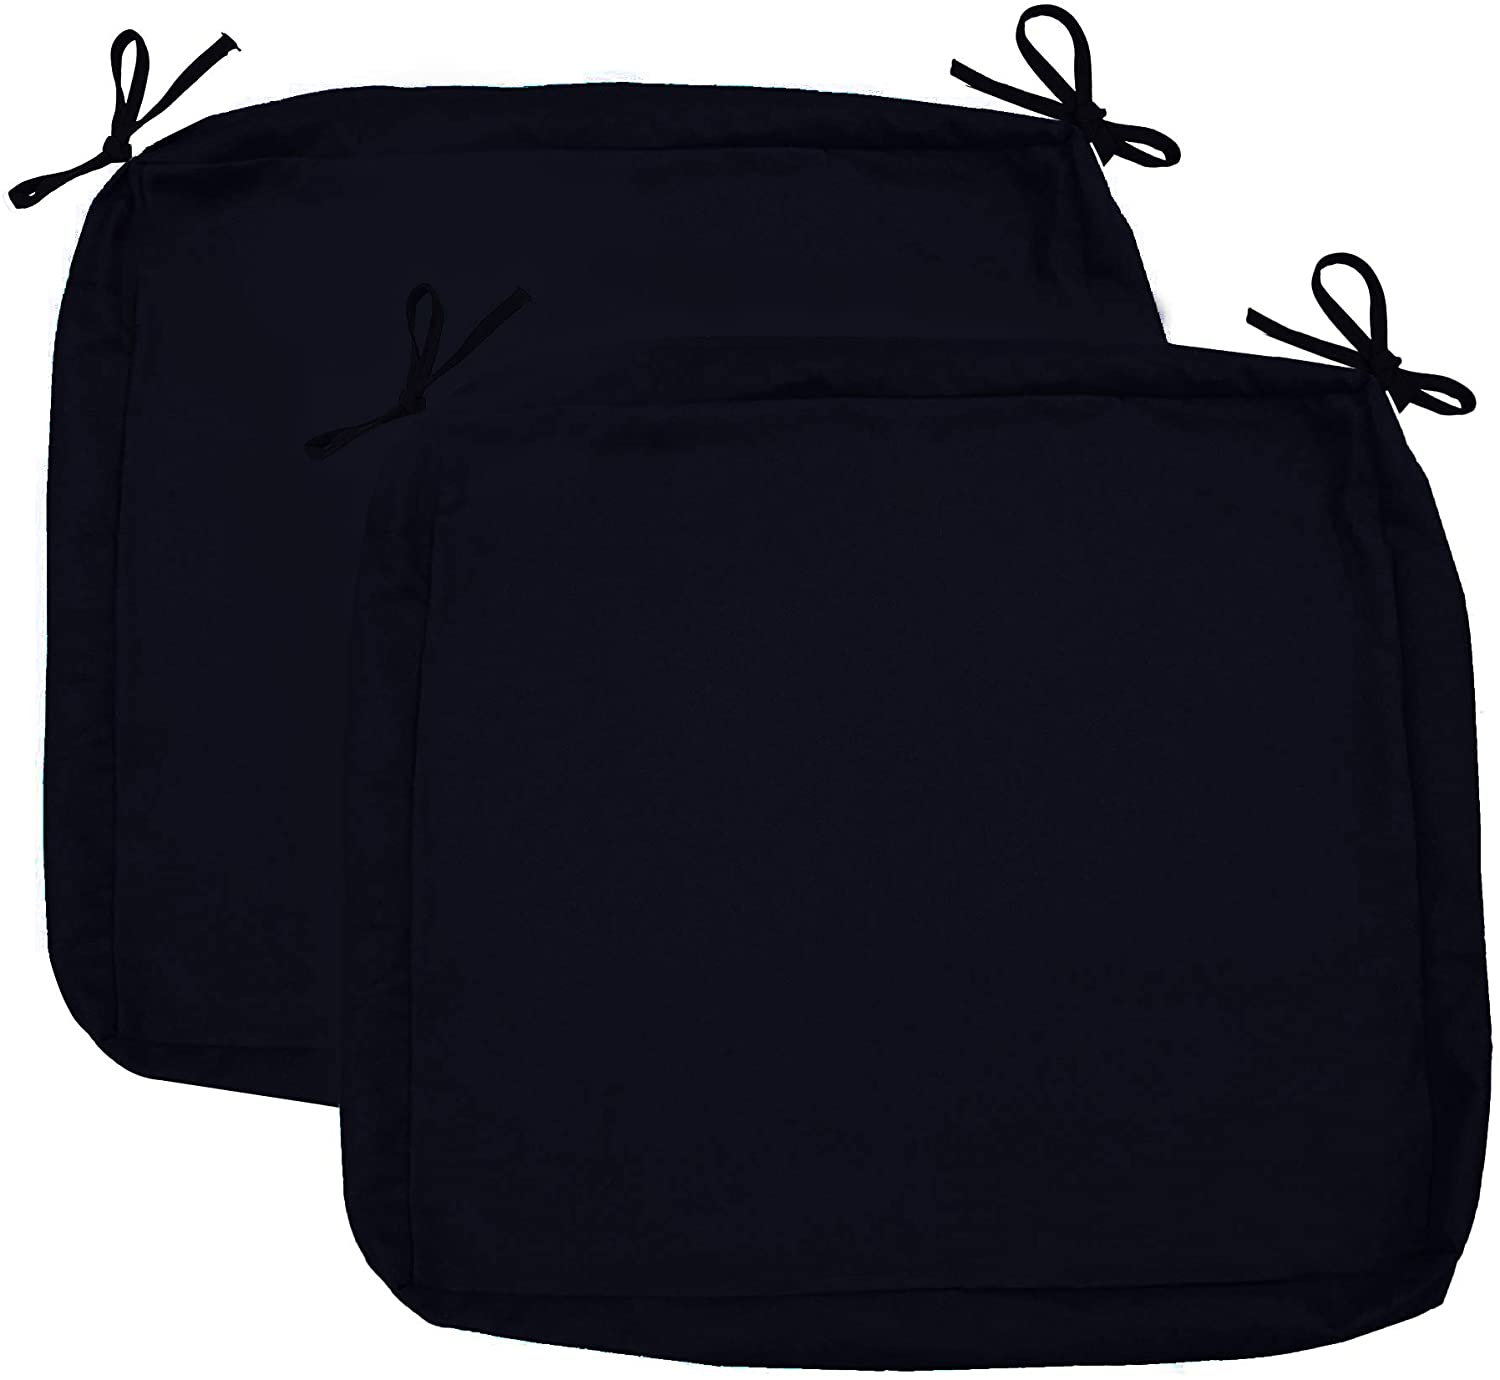 "Sigmat Outdoor Seat Cushion Cover Water Repellent Square Chair Cushion Cover-Only Cover Black 20""x20""x2""(2 Covers)"